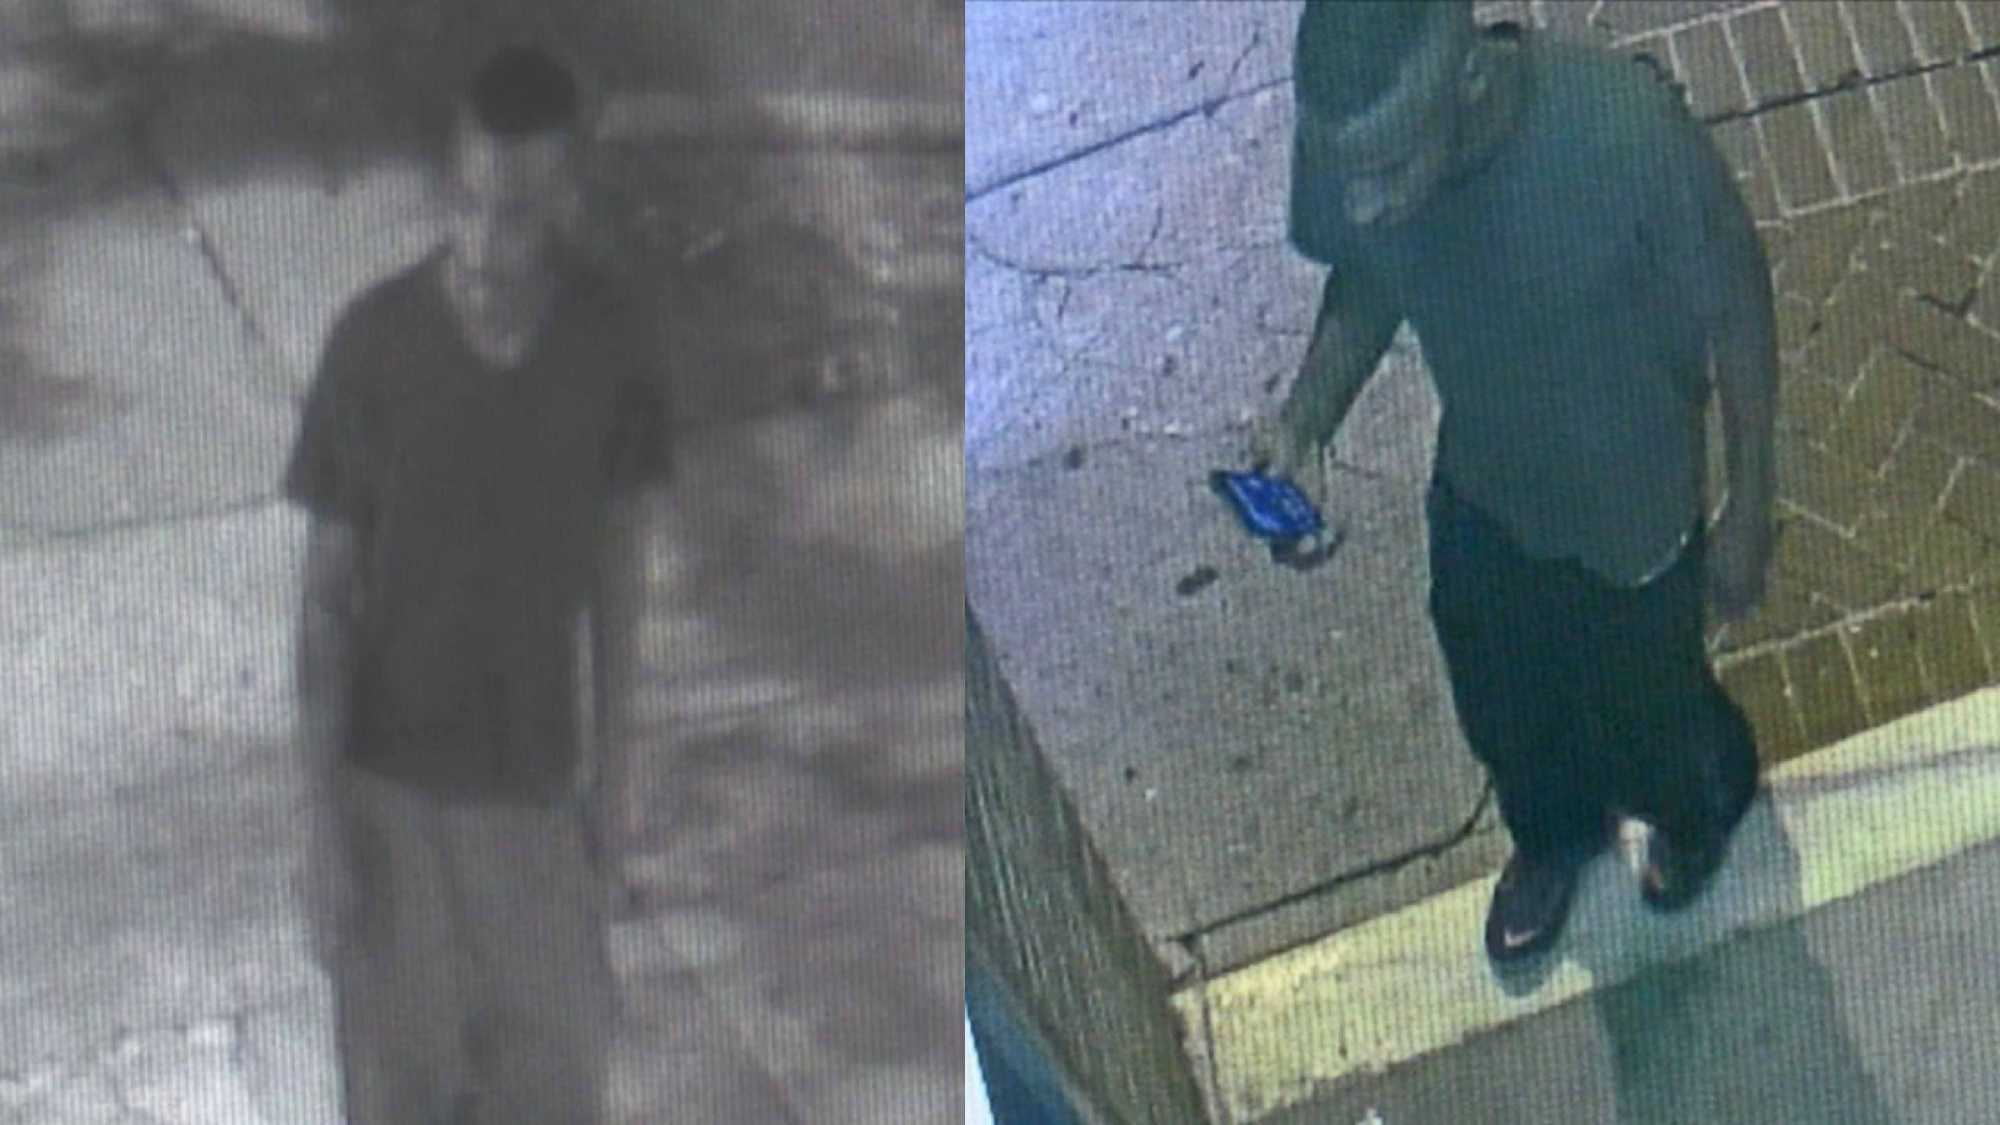 Police continue to look for the suspects who robbed and sexually assaulted a woman Thursday night.